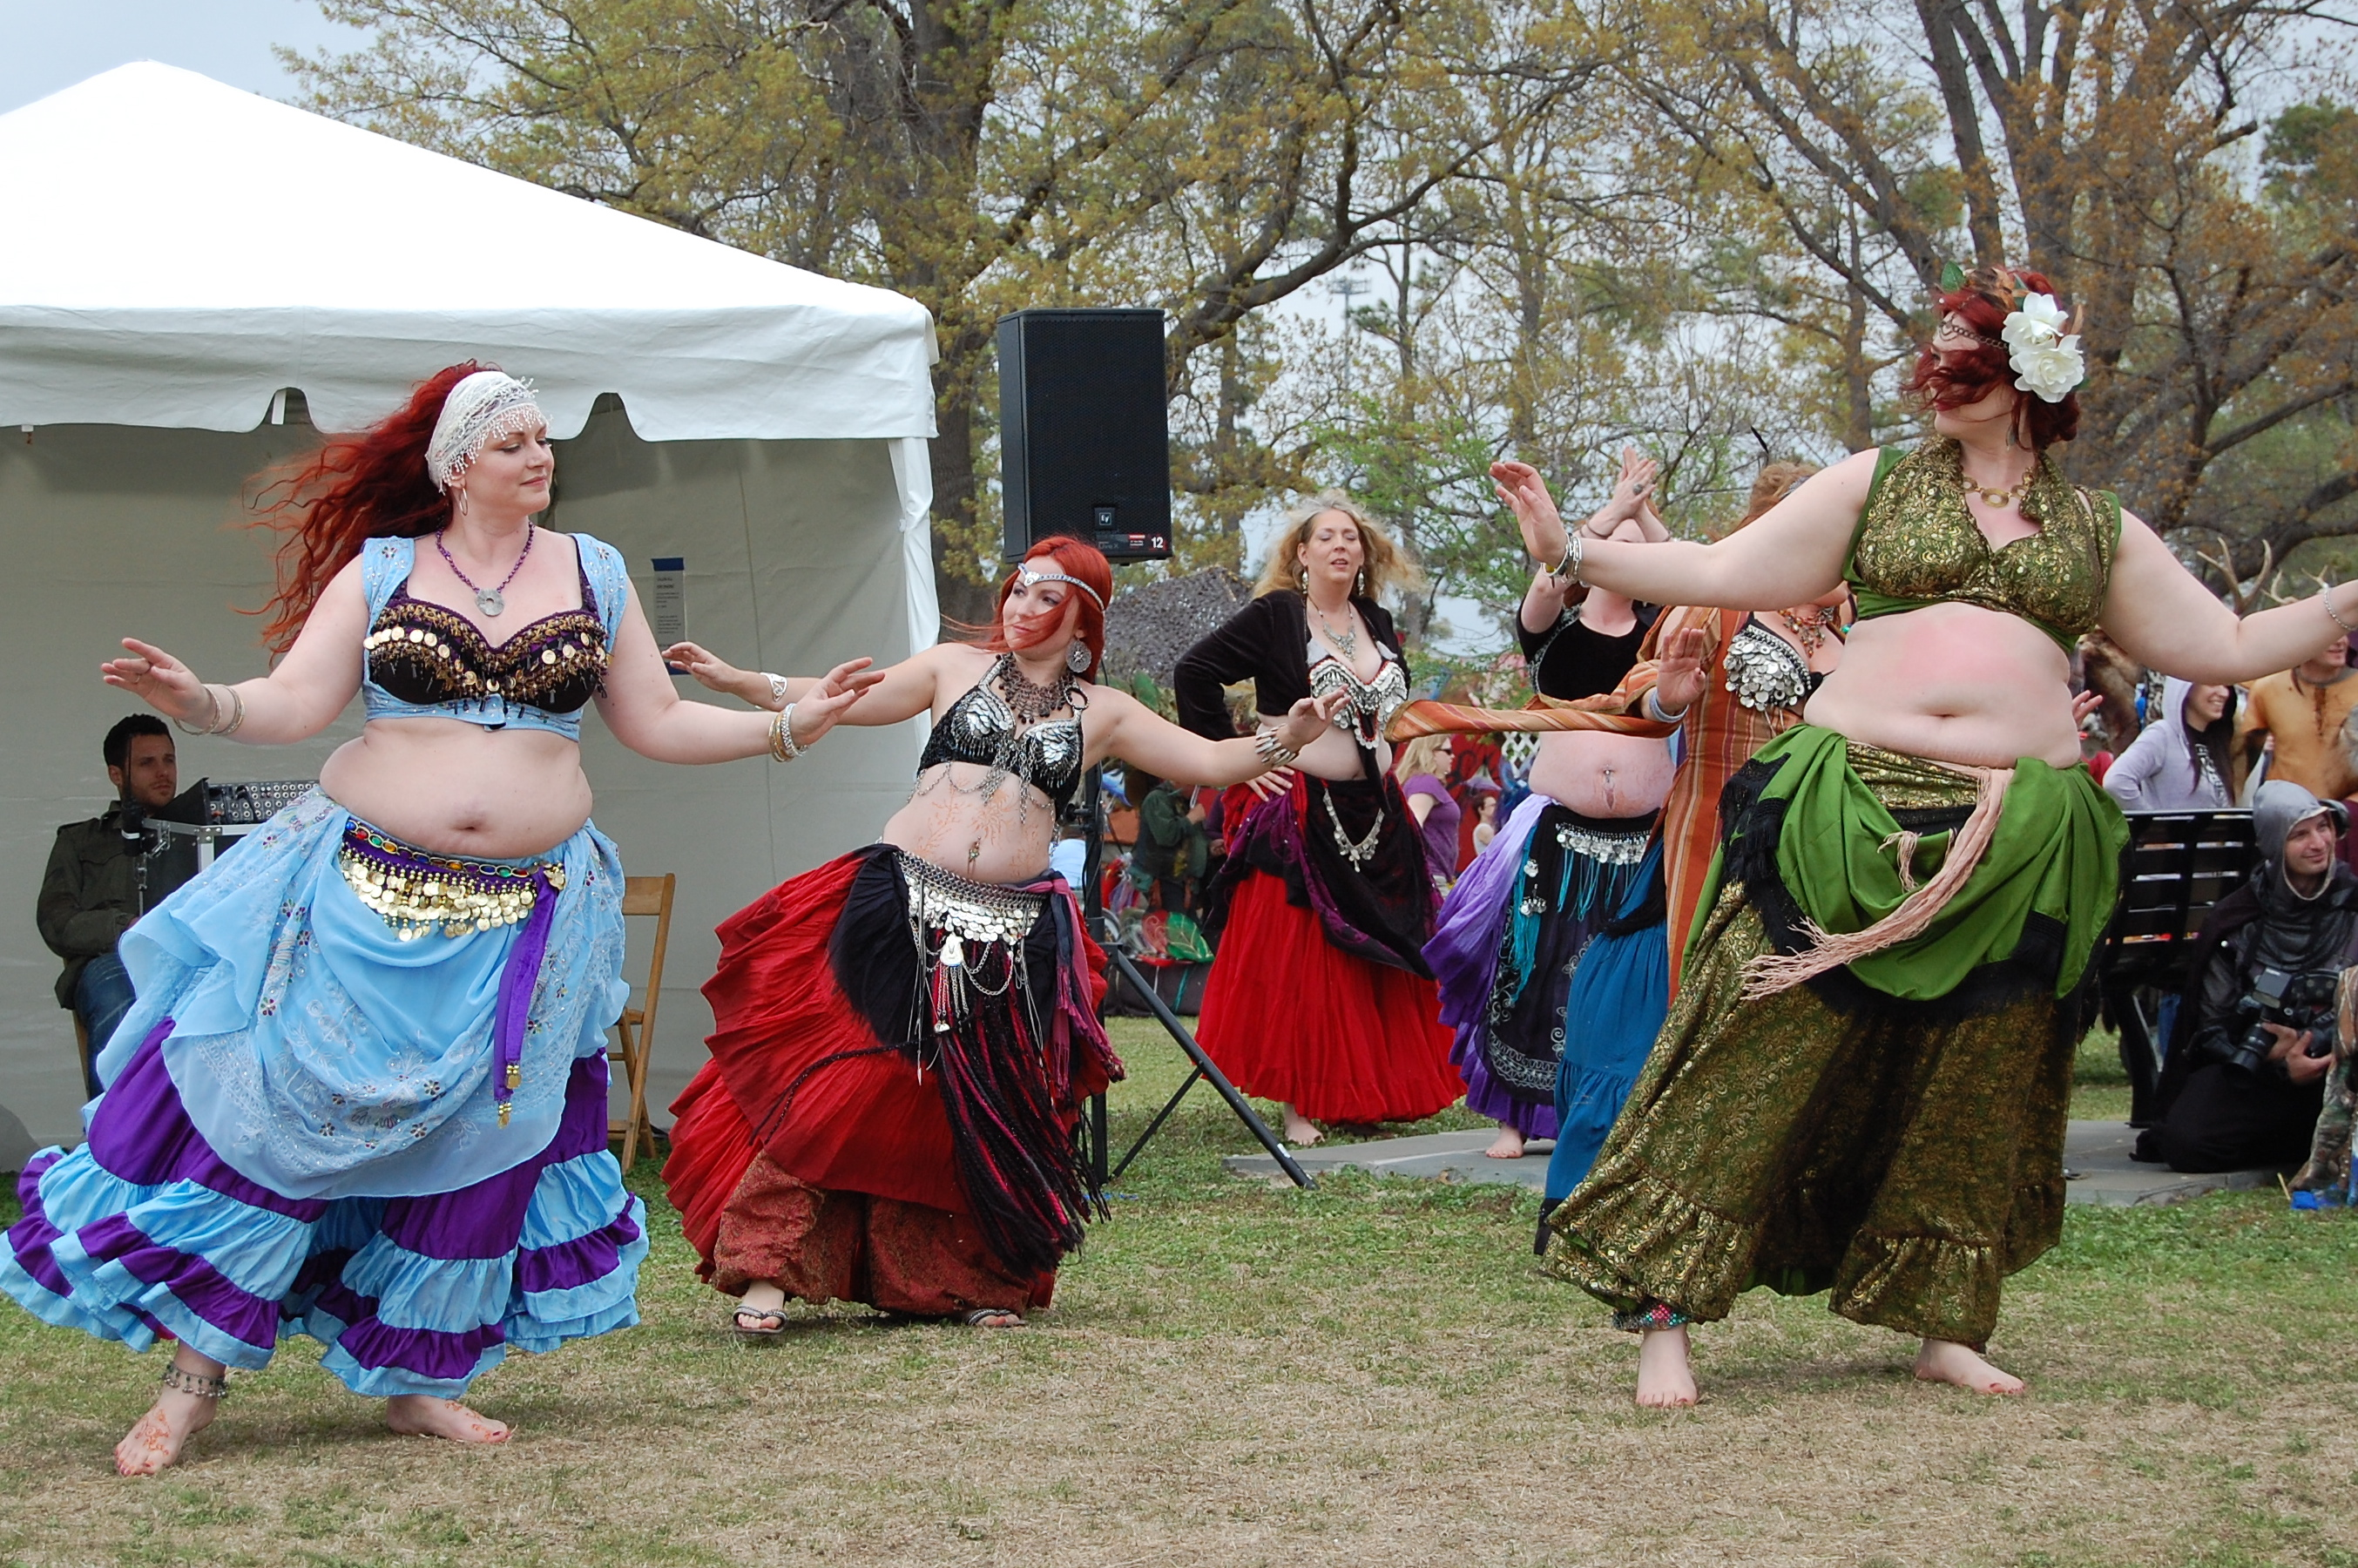 Renaissance belly dancers